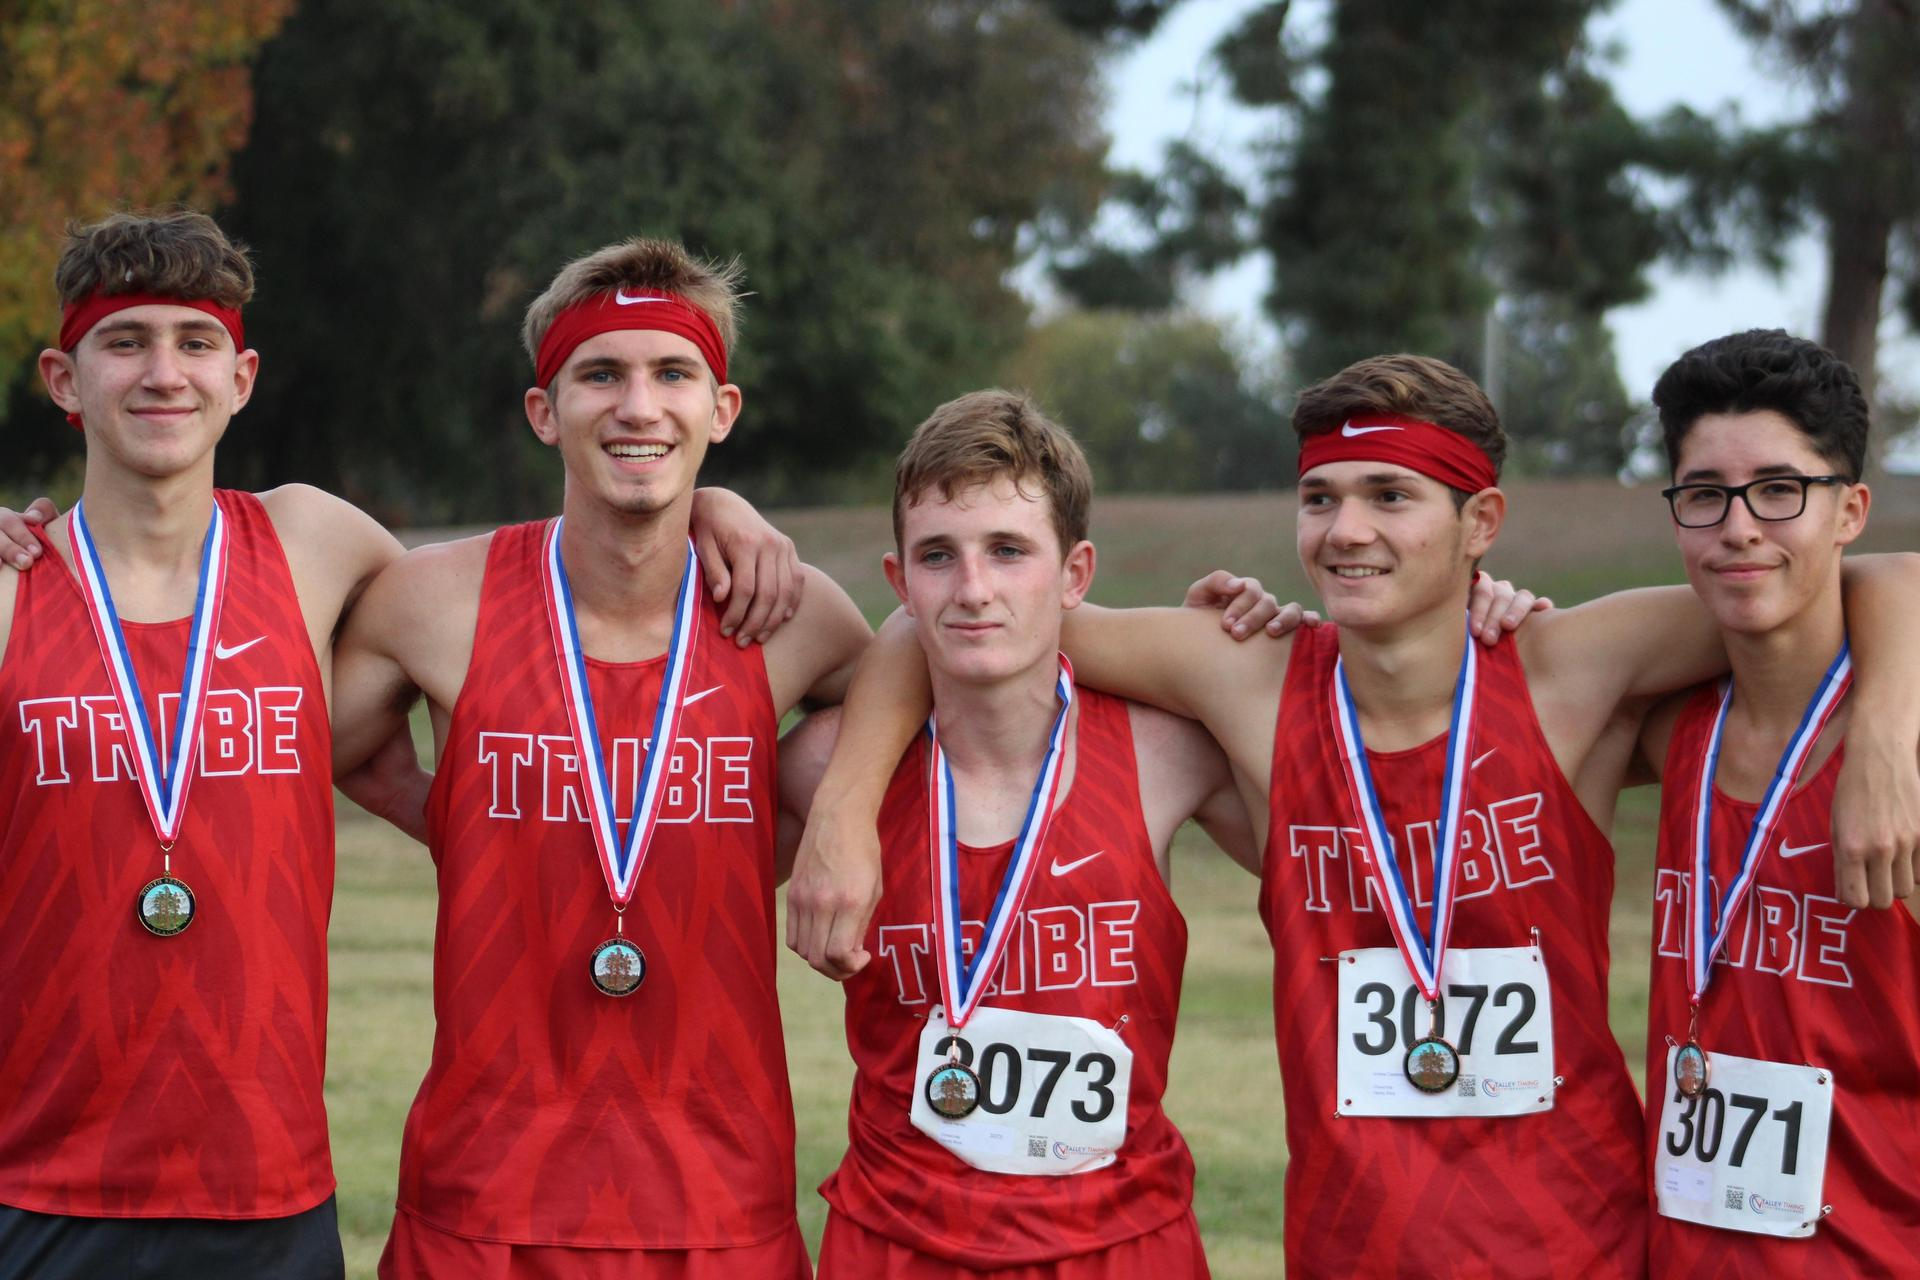 Connor Borba, Micheal Eggert, Andrew Castadenda, Jayce Harvey and Ryan Diaz posing